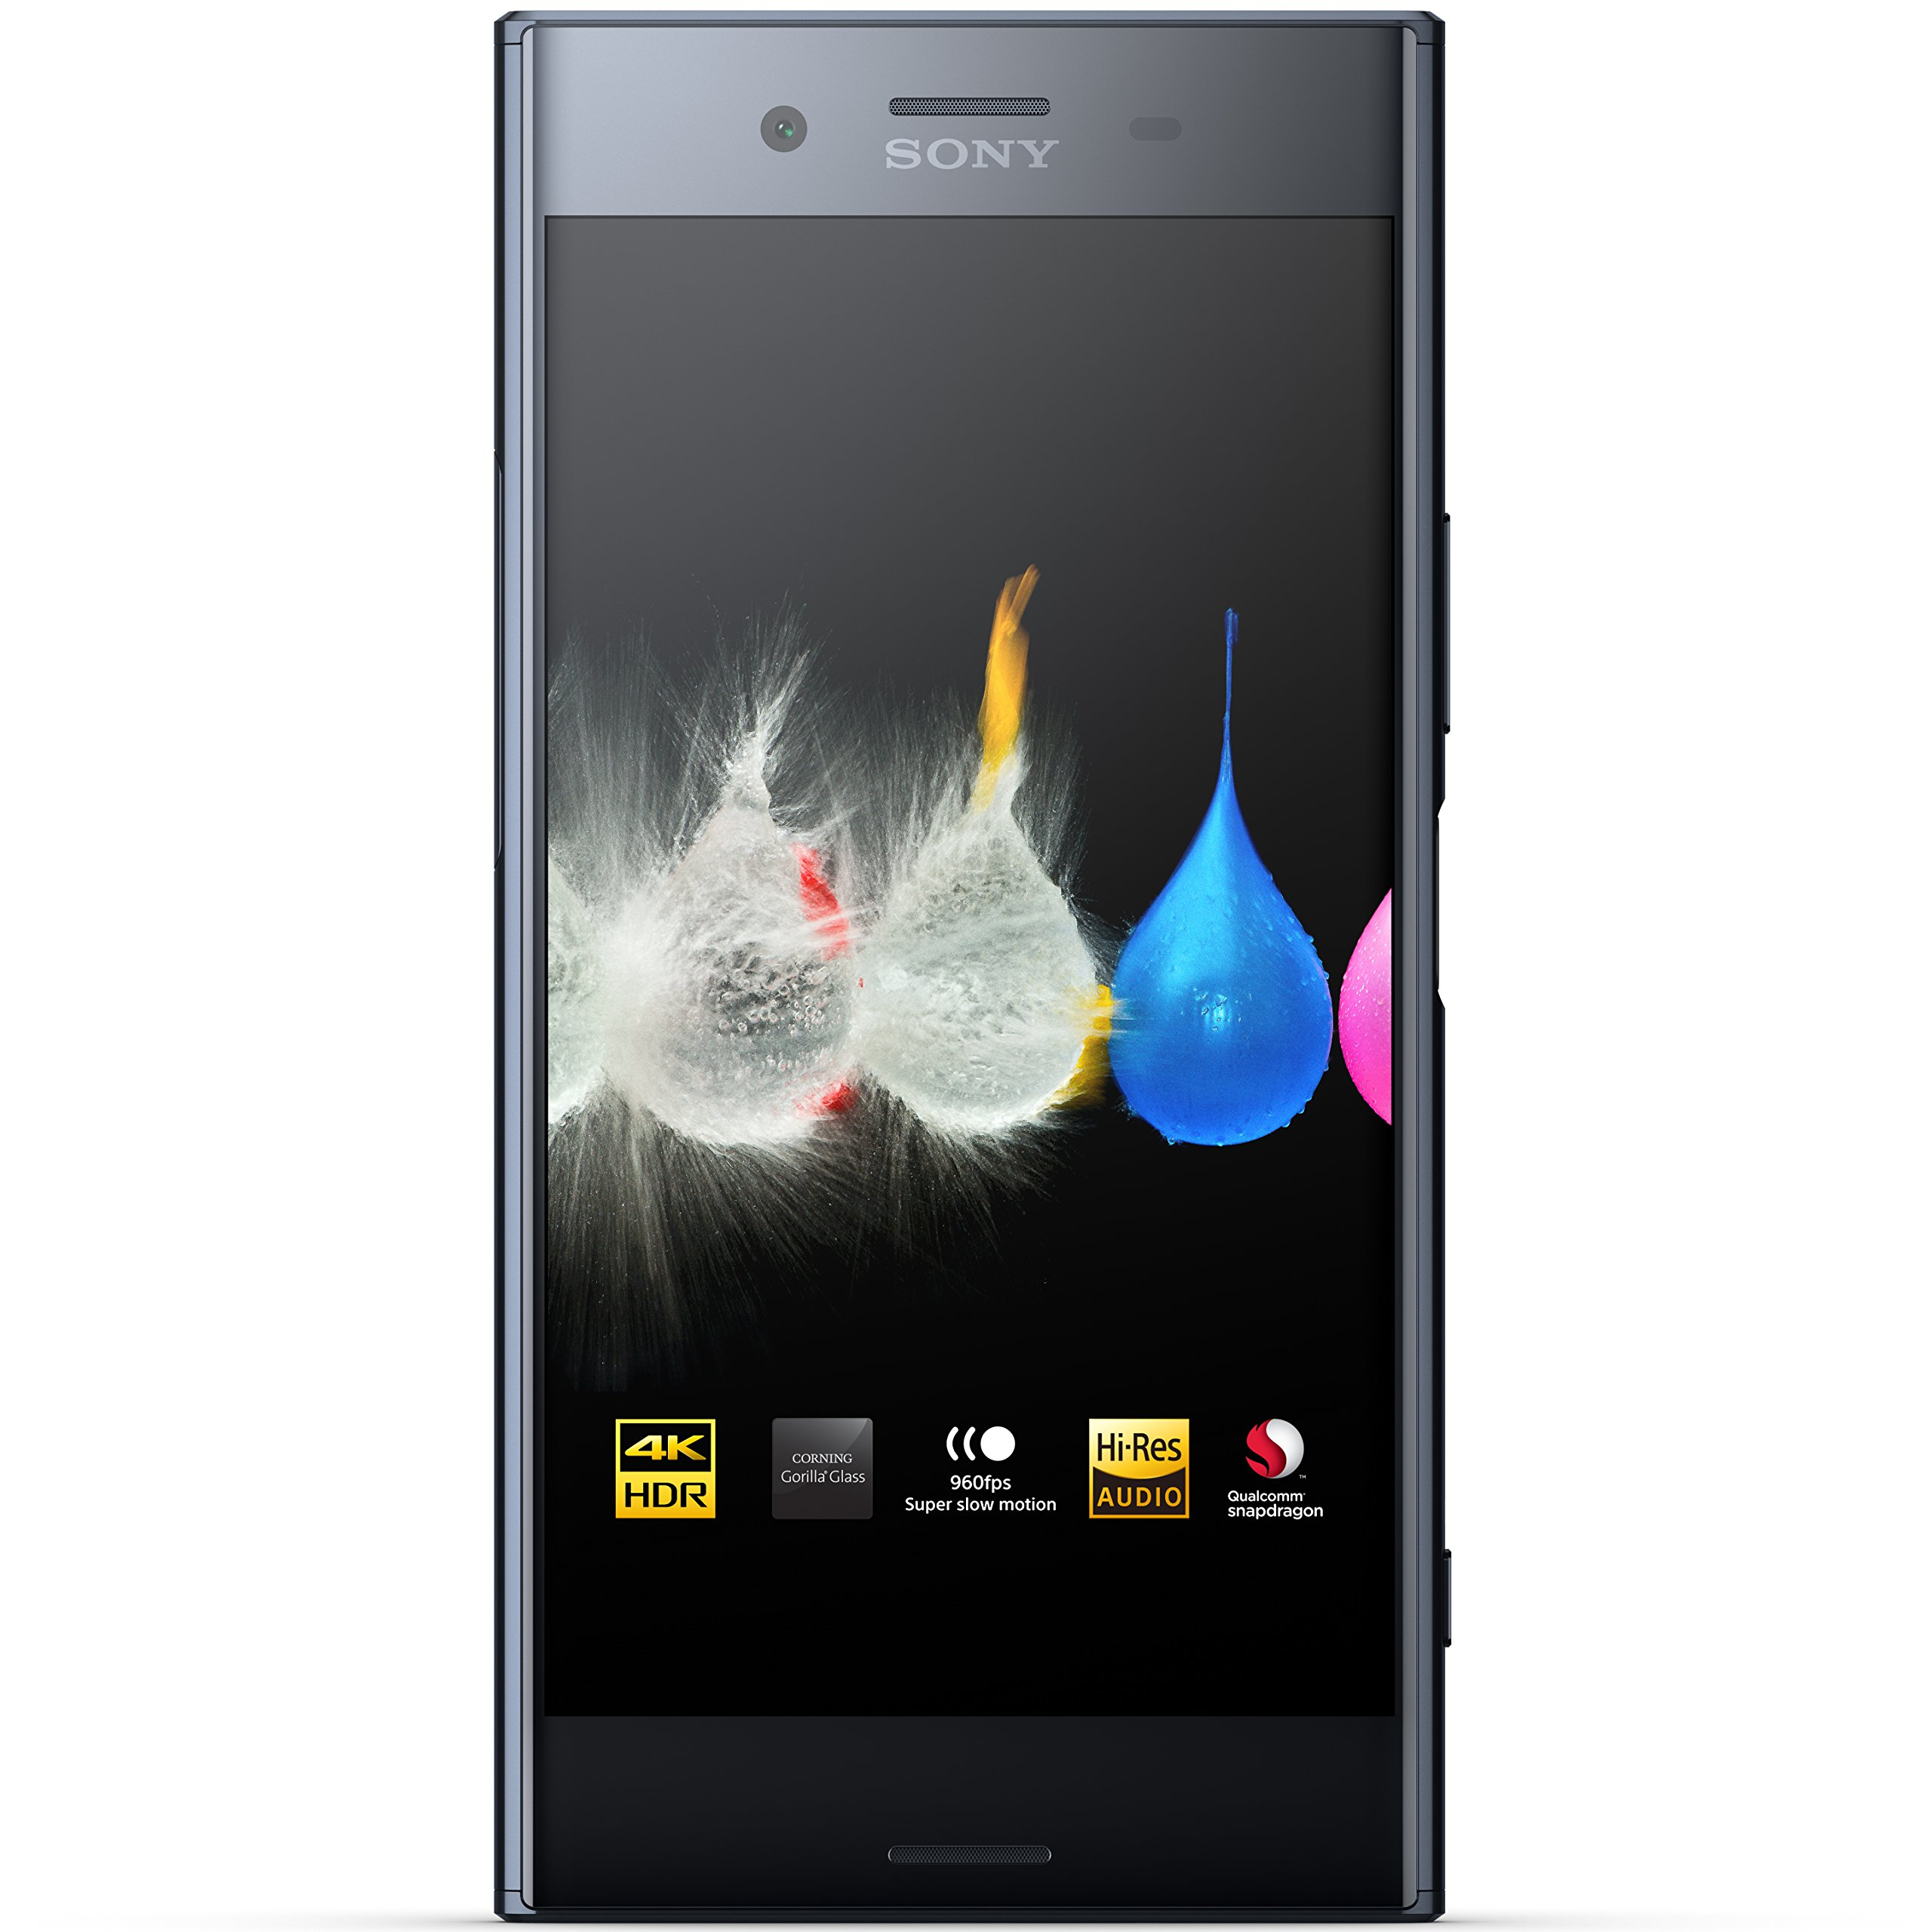 Sony Xperia XZ Premium - Unlocked Smartphone - 5.5'', 64GB - Dual SIM - Deepsea Black (US Warranty) by Sony